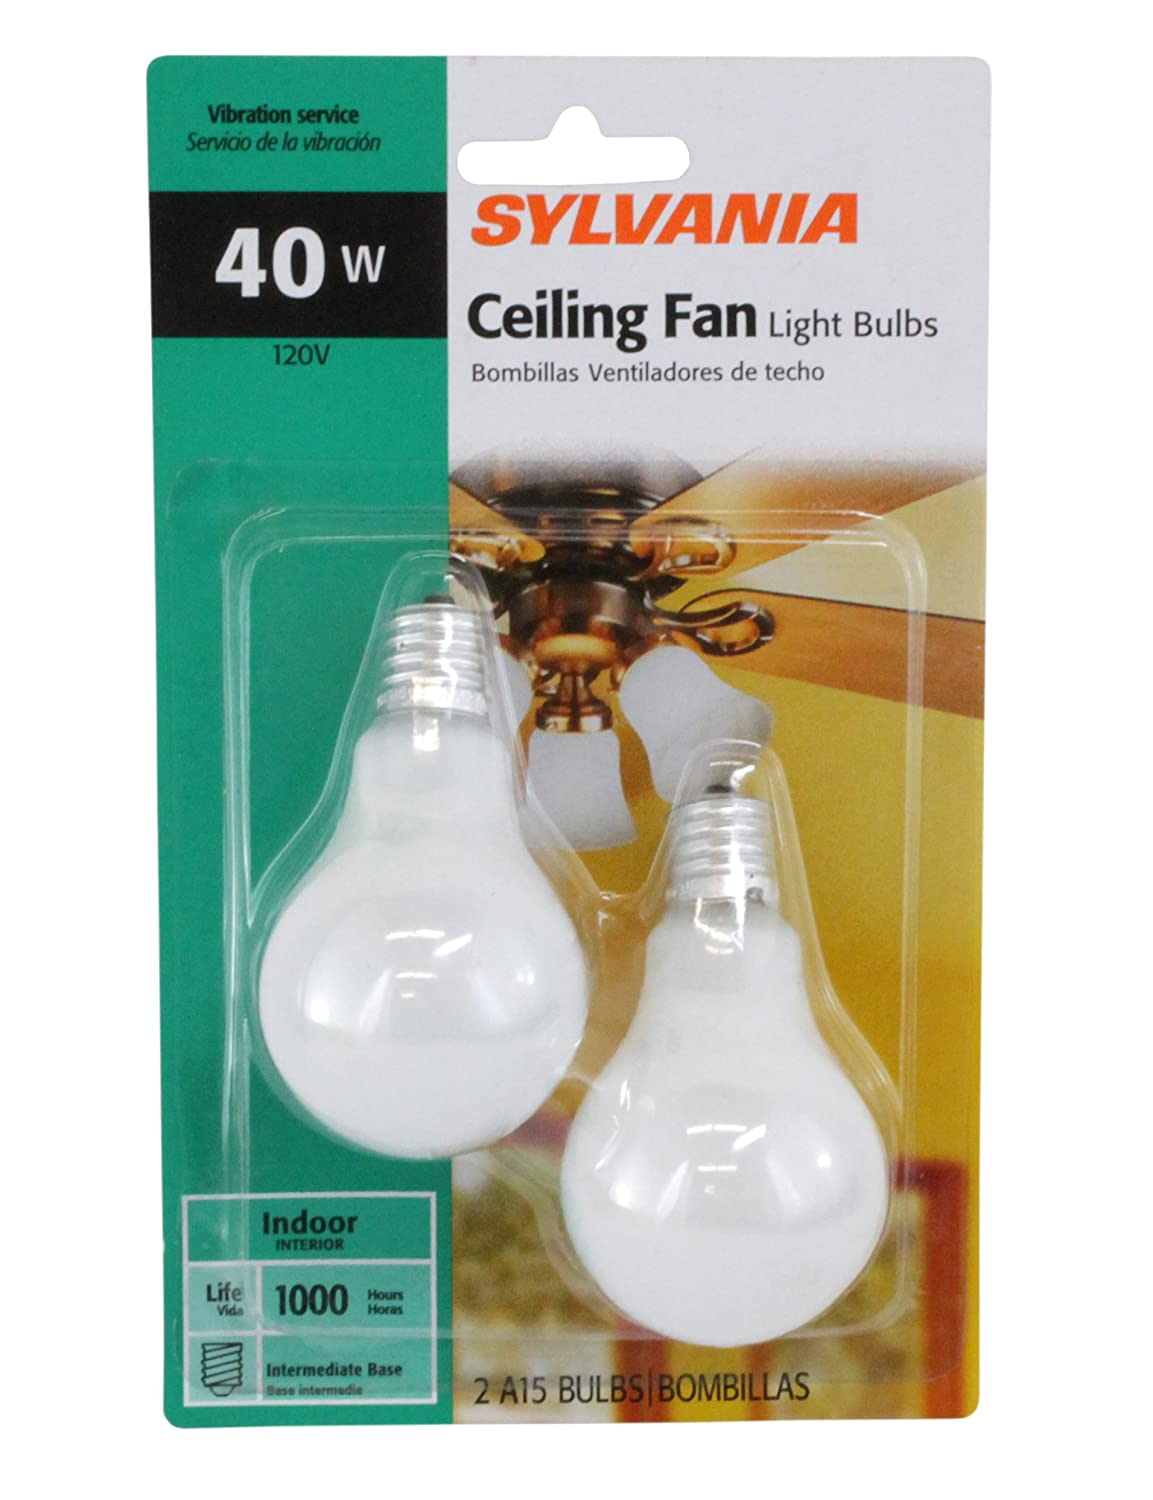 SYLVANIA 40-Watt A15 -Clear- Ceiling Fan Bulbs - Intermdiate Base 2-Pack X22076 - Decor Bulbs - Amazon.com